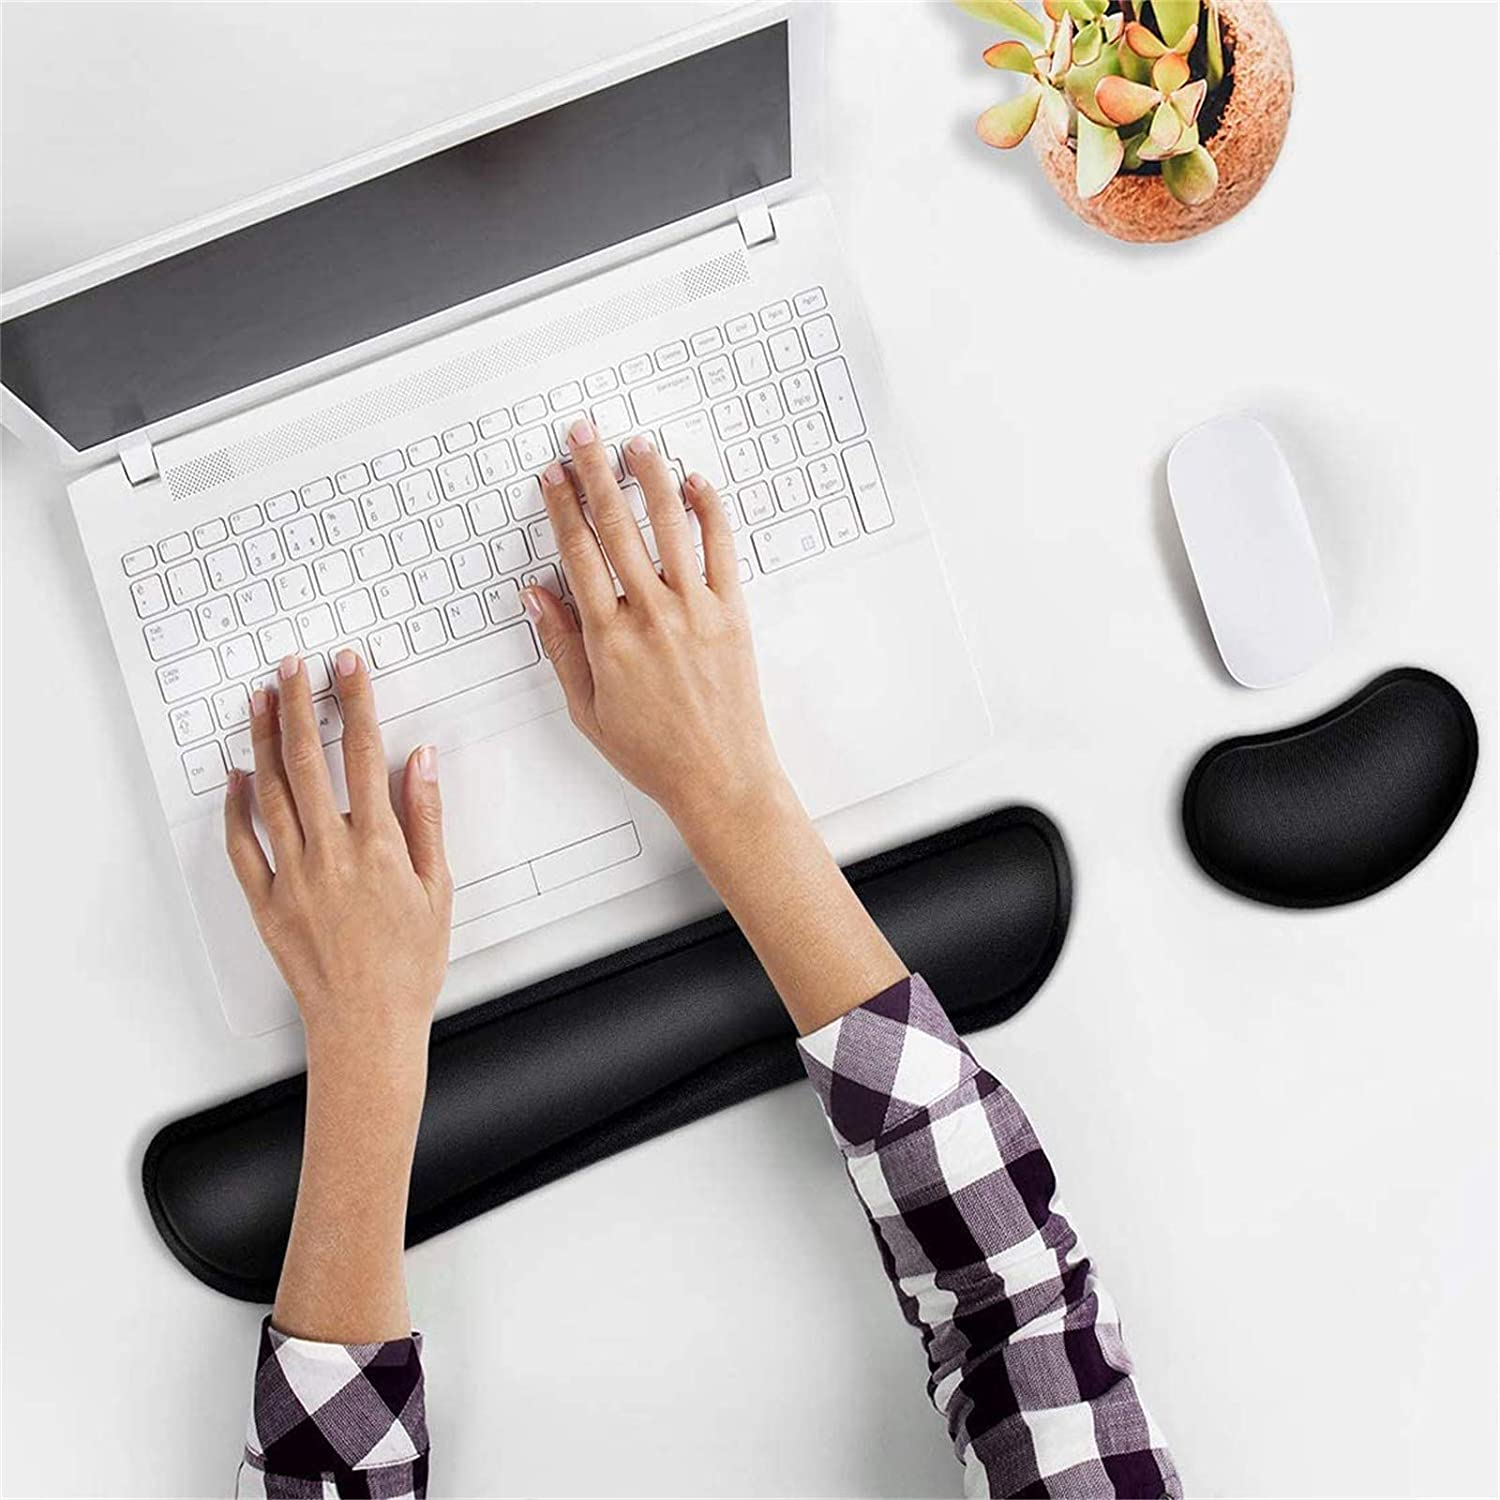 Mouse Wrist Max 68% OFF All stores are sold Rest Pad Keyboard Memory Bar Support Foam